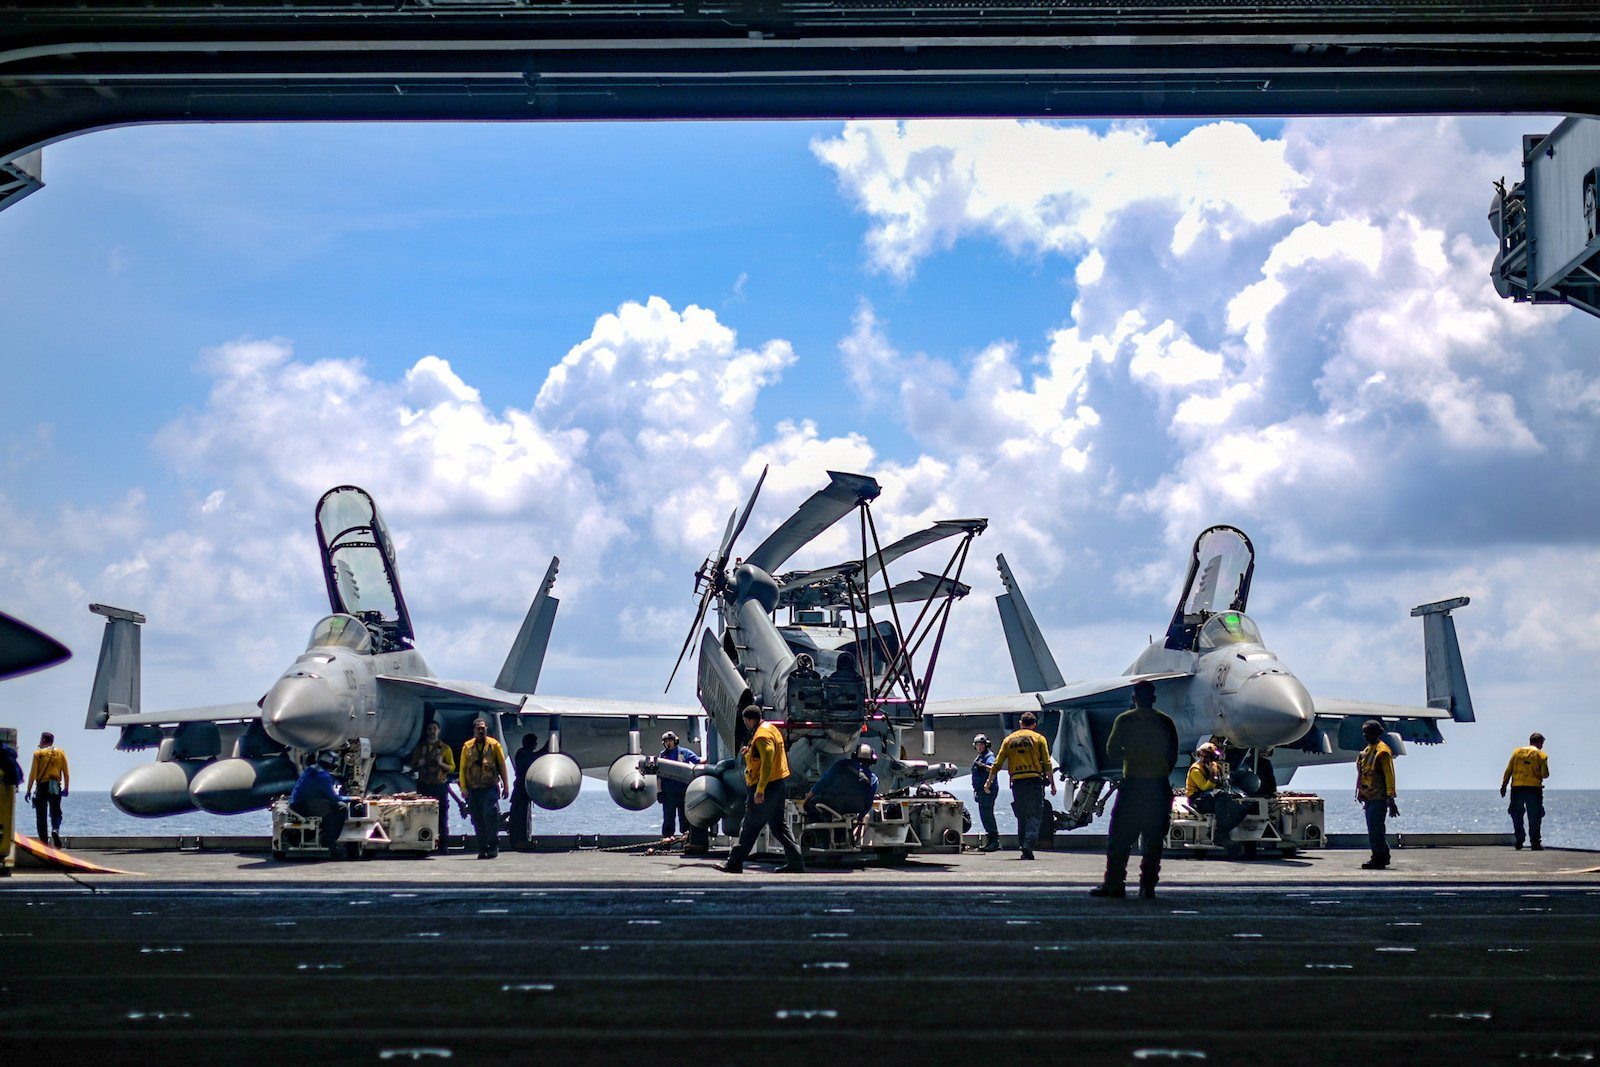 U.S. Navy sailors move aircraft from an elevator into the hangar bay of the aircraft carrier USS Theodore Roosevelt in the South China Sea